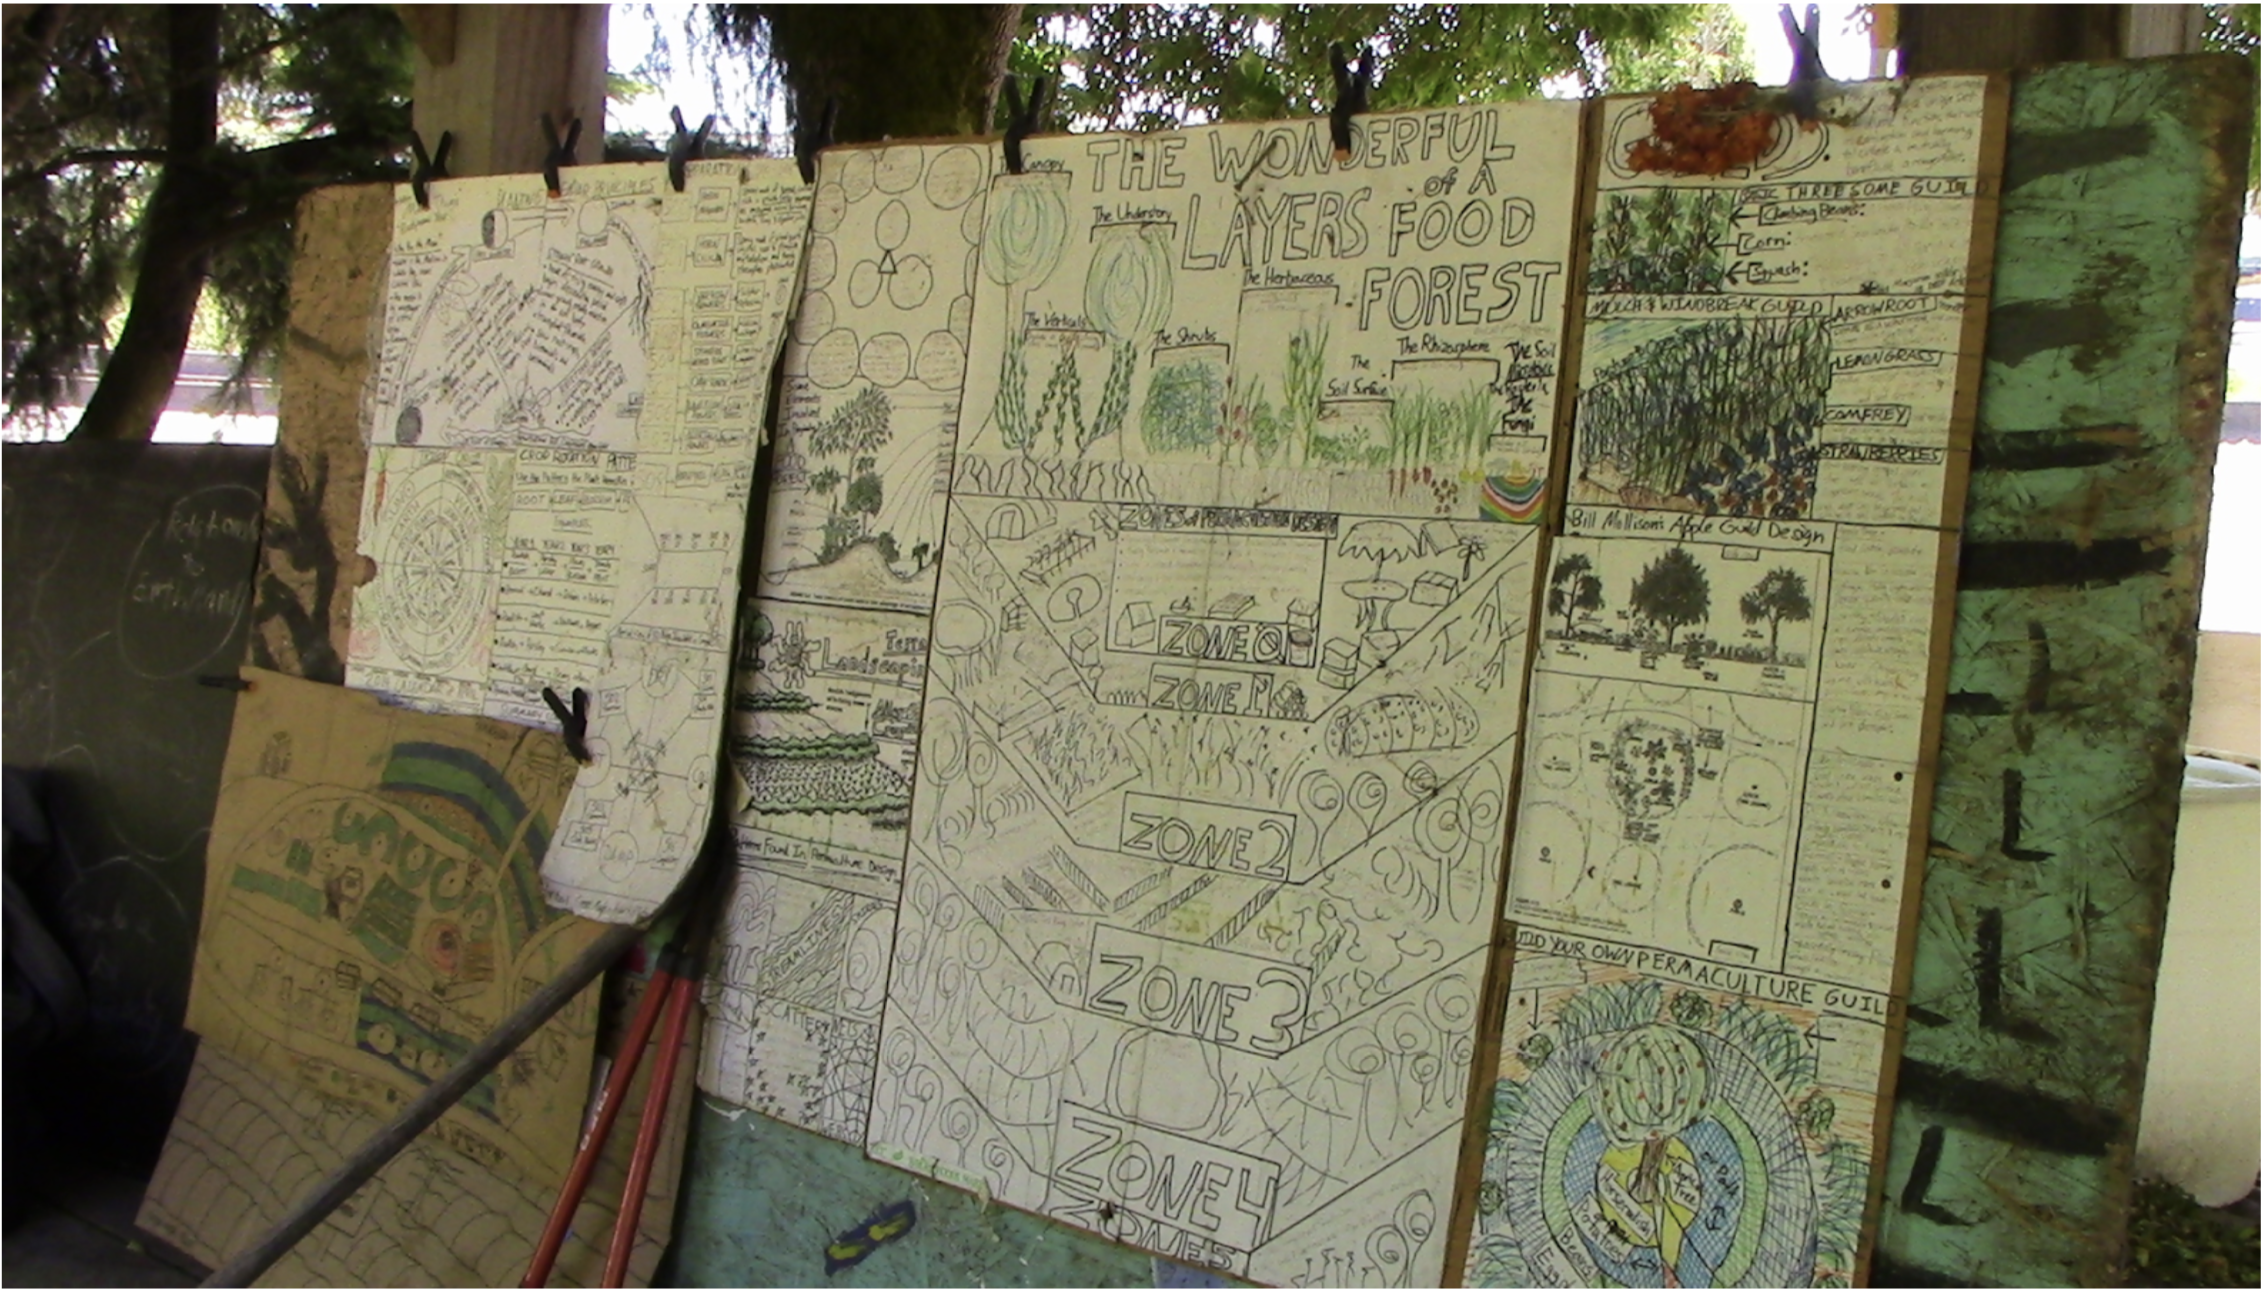 Food forest diagrams at Greeley Food Forest